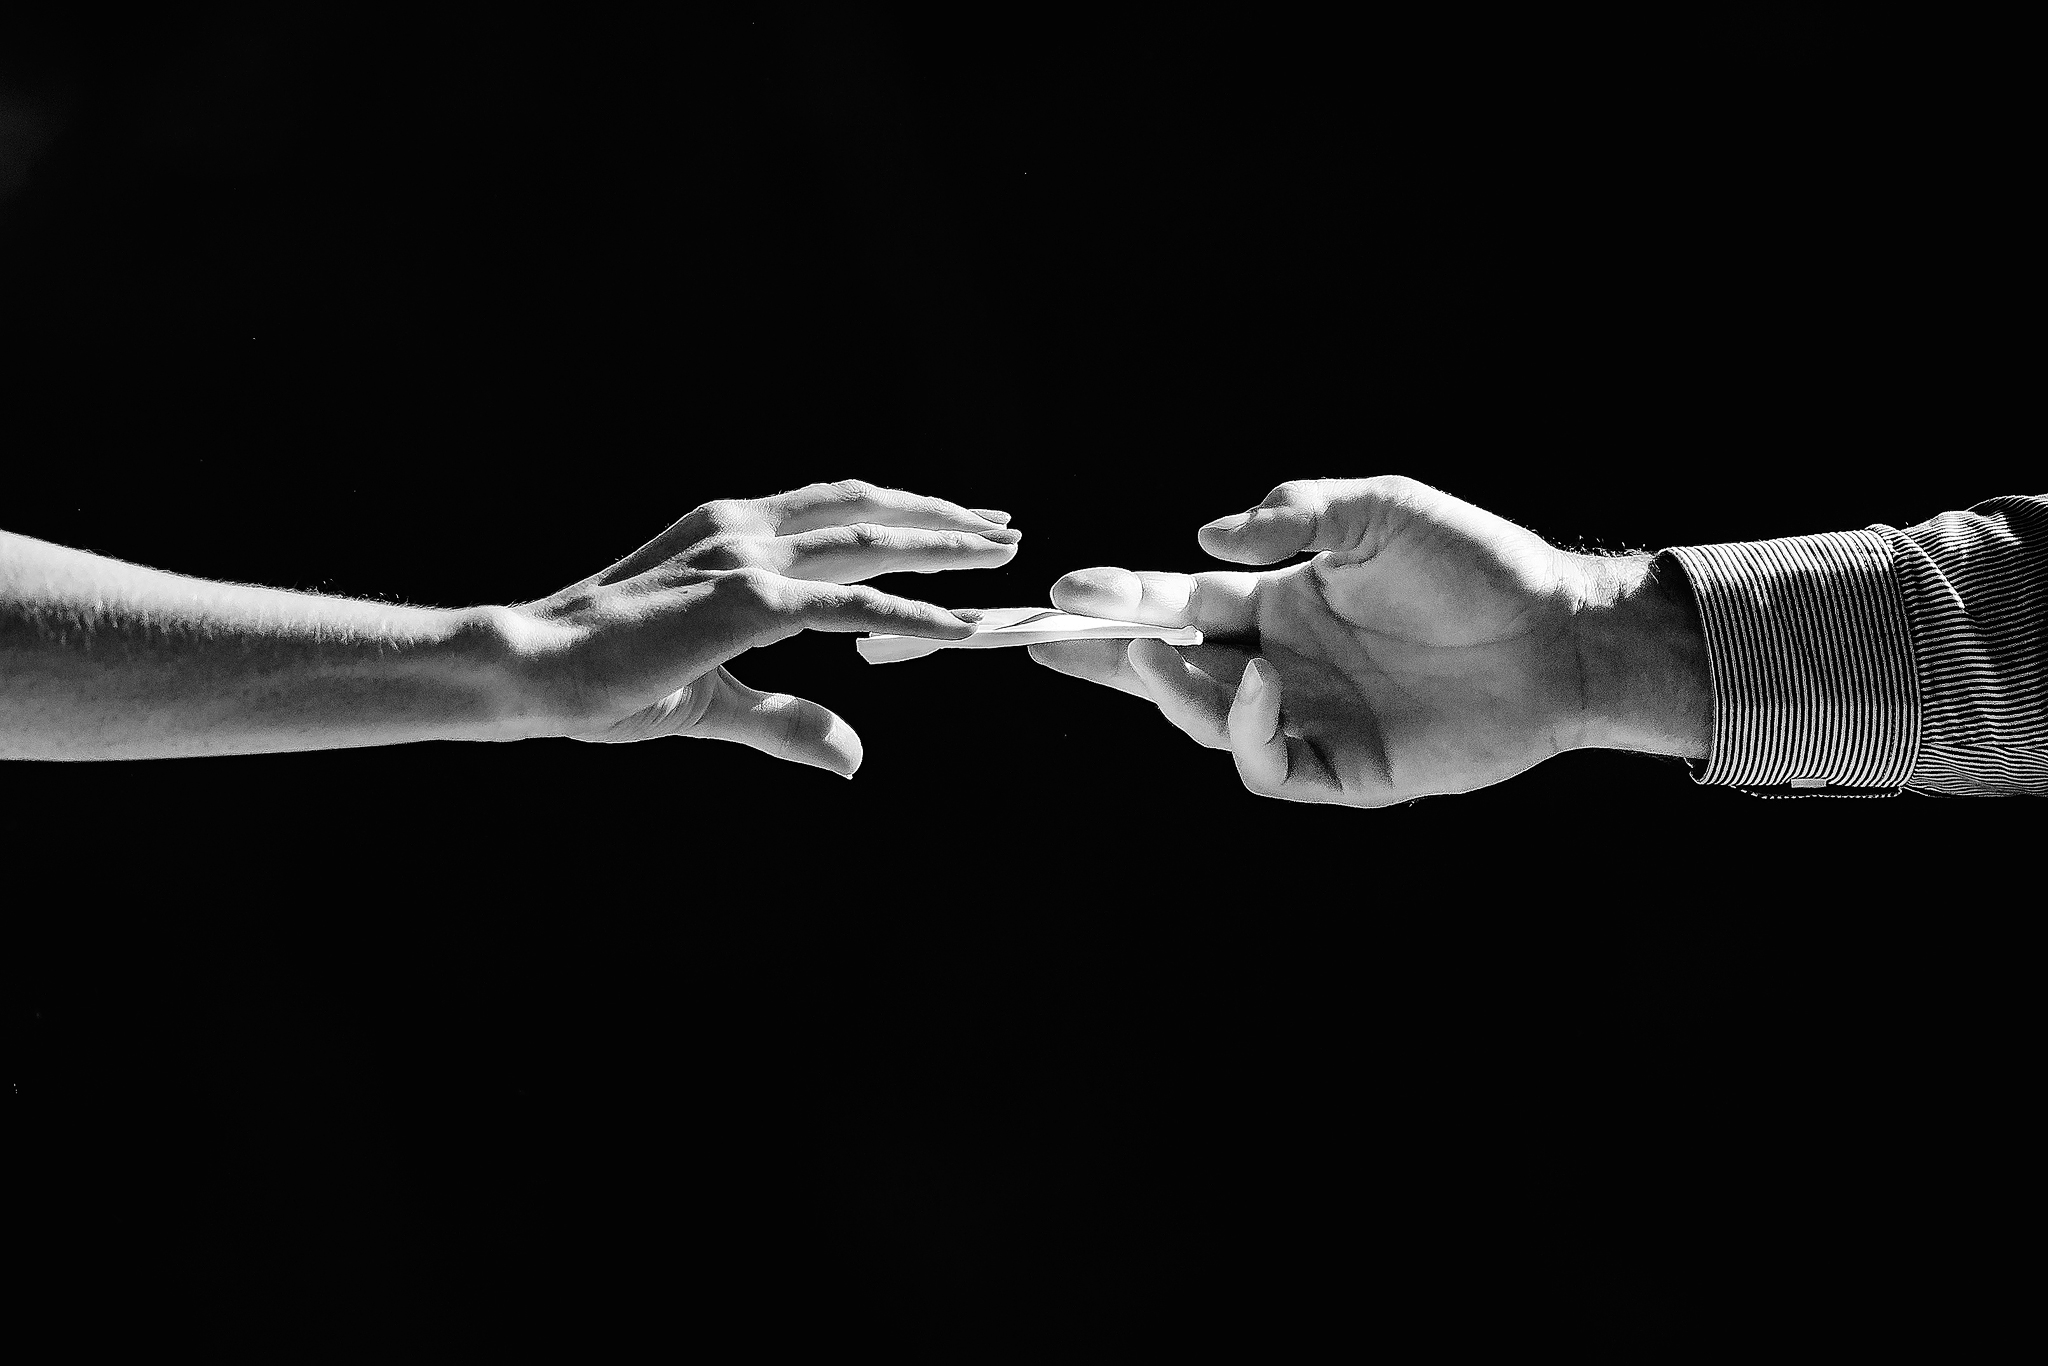 Hands passing a note - photo by Ruan Redelinghuys Photography